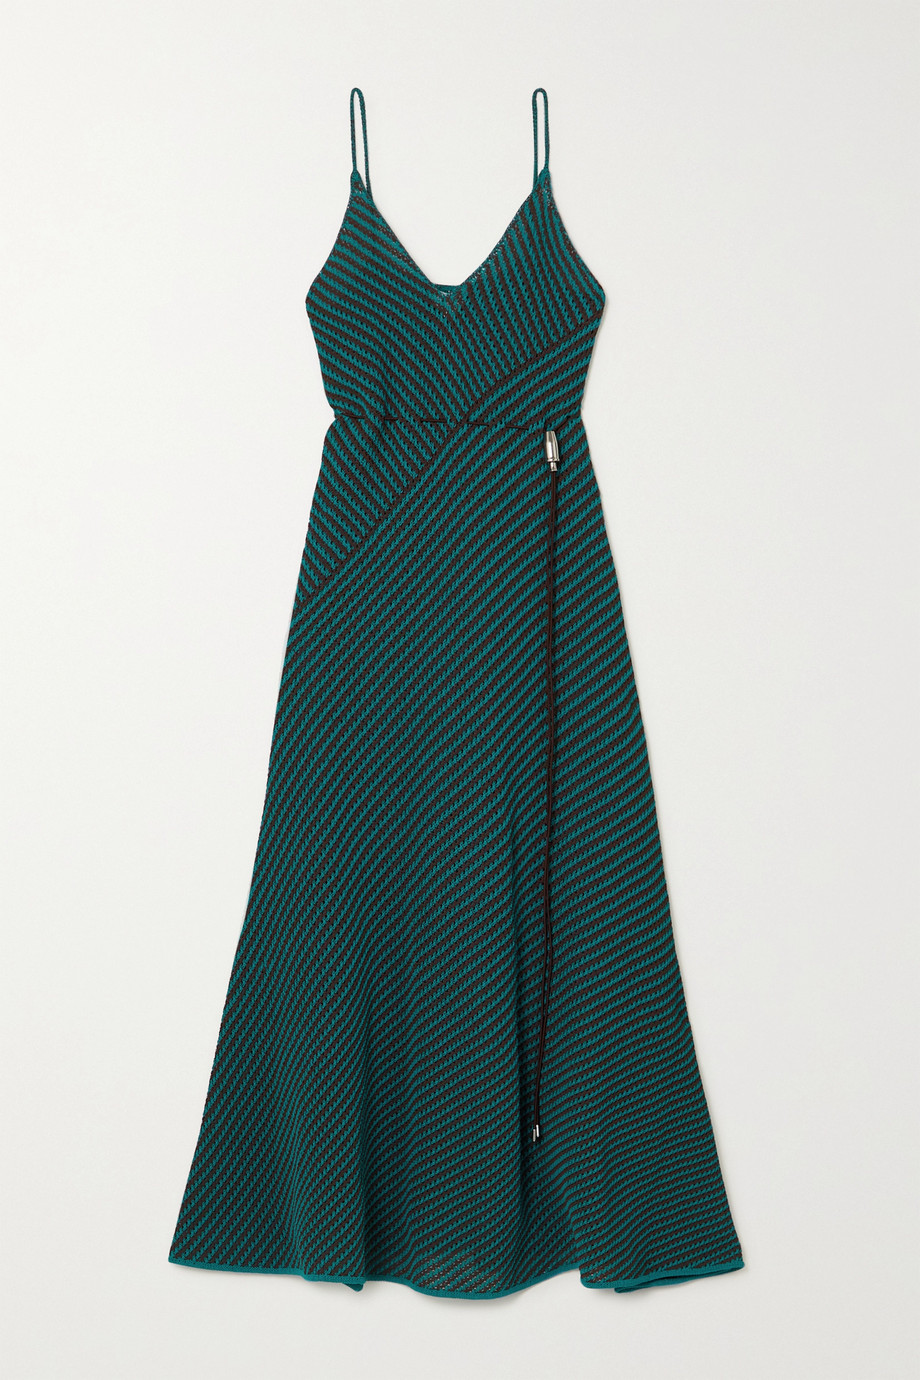 BOTTEGA VENETA Striped open-knit cotton-blend maxi dress